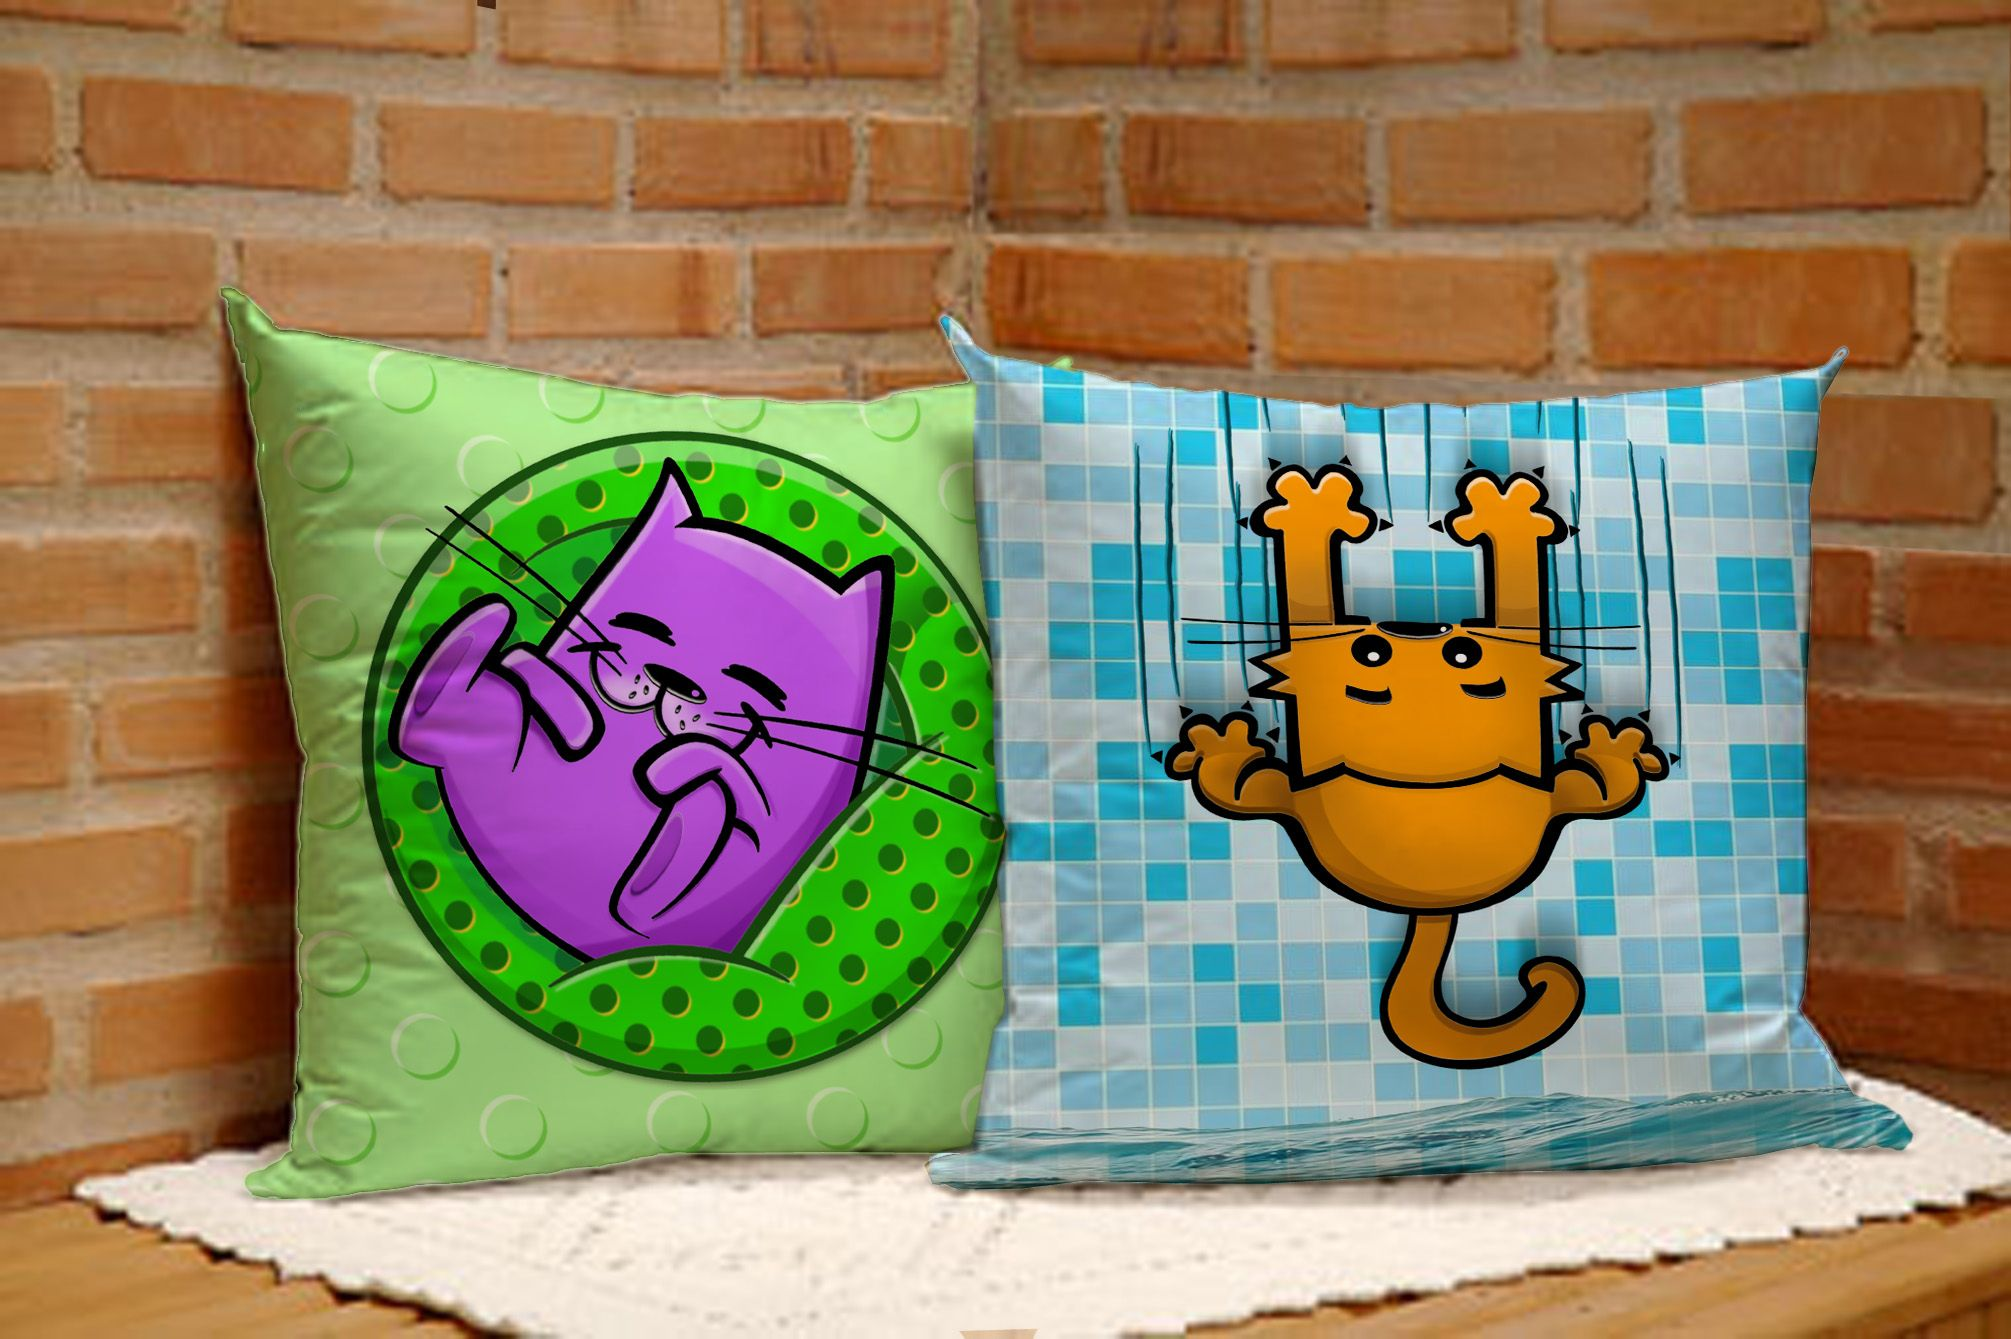 Cushions designed by Marcelo Moreira marcelomirandapinto@gmail.com